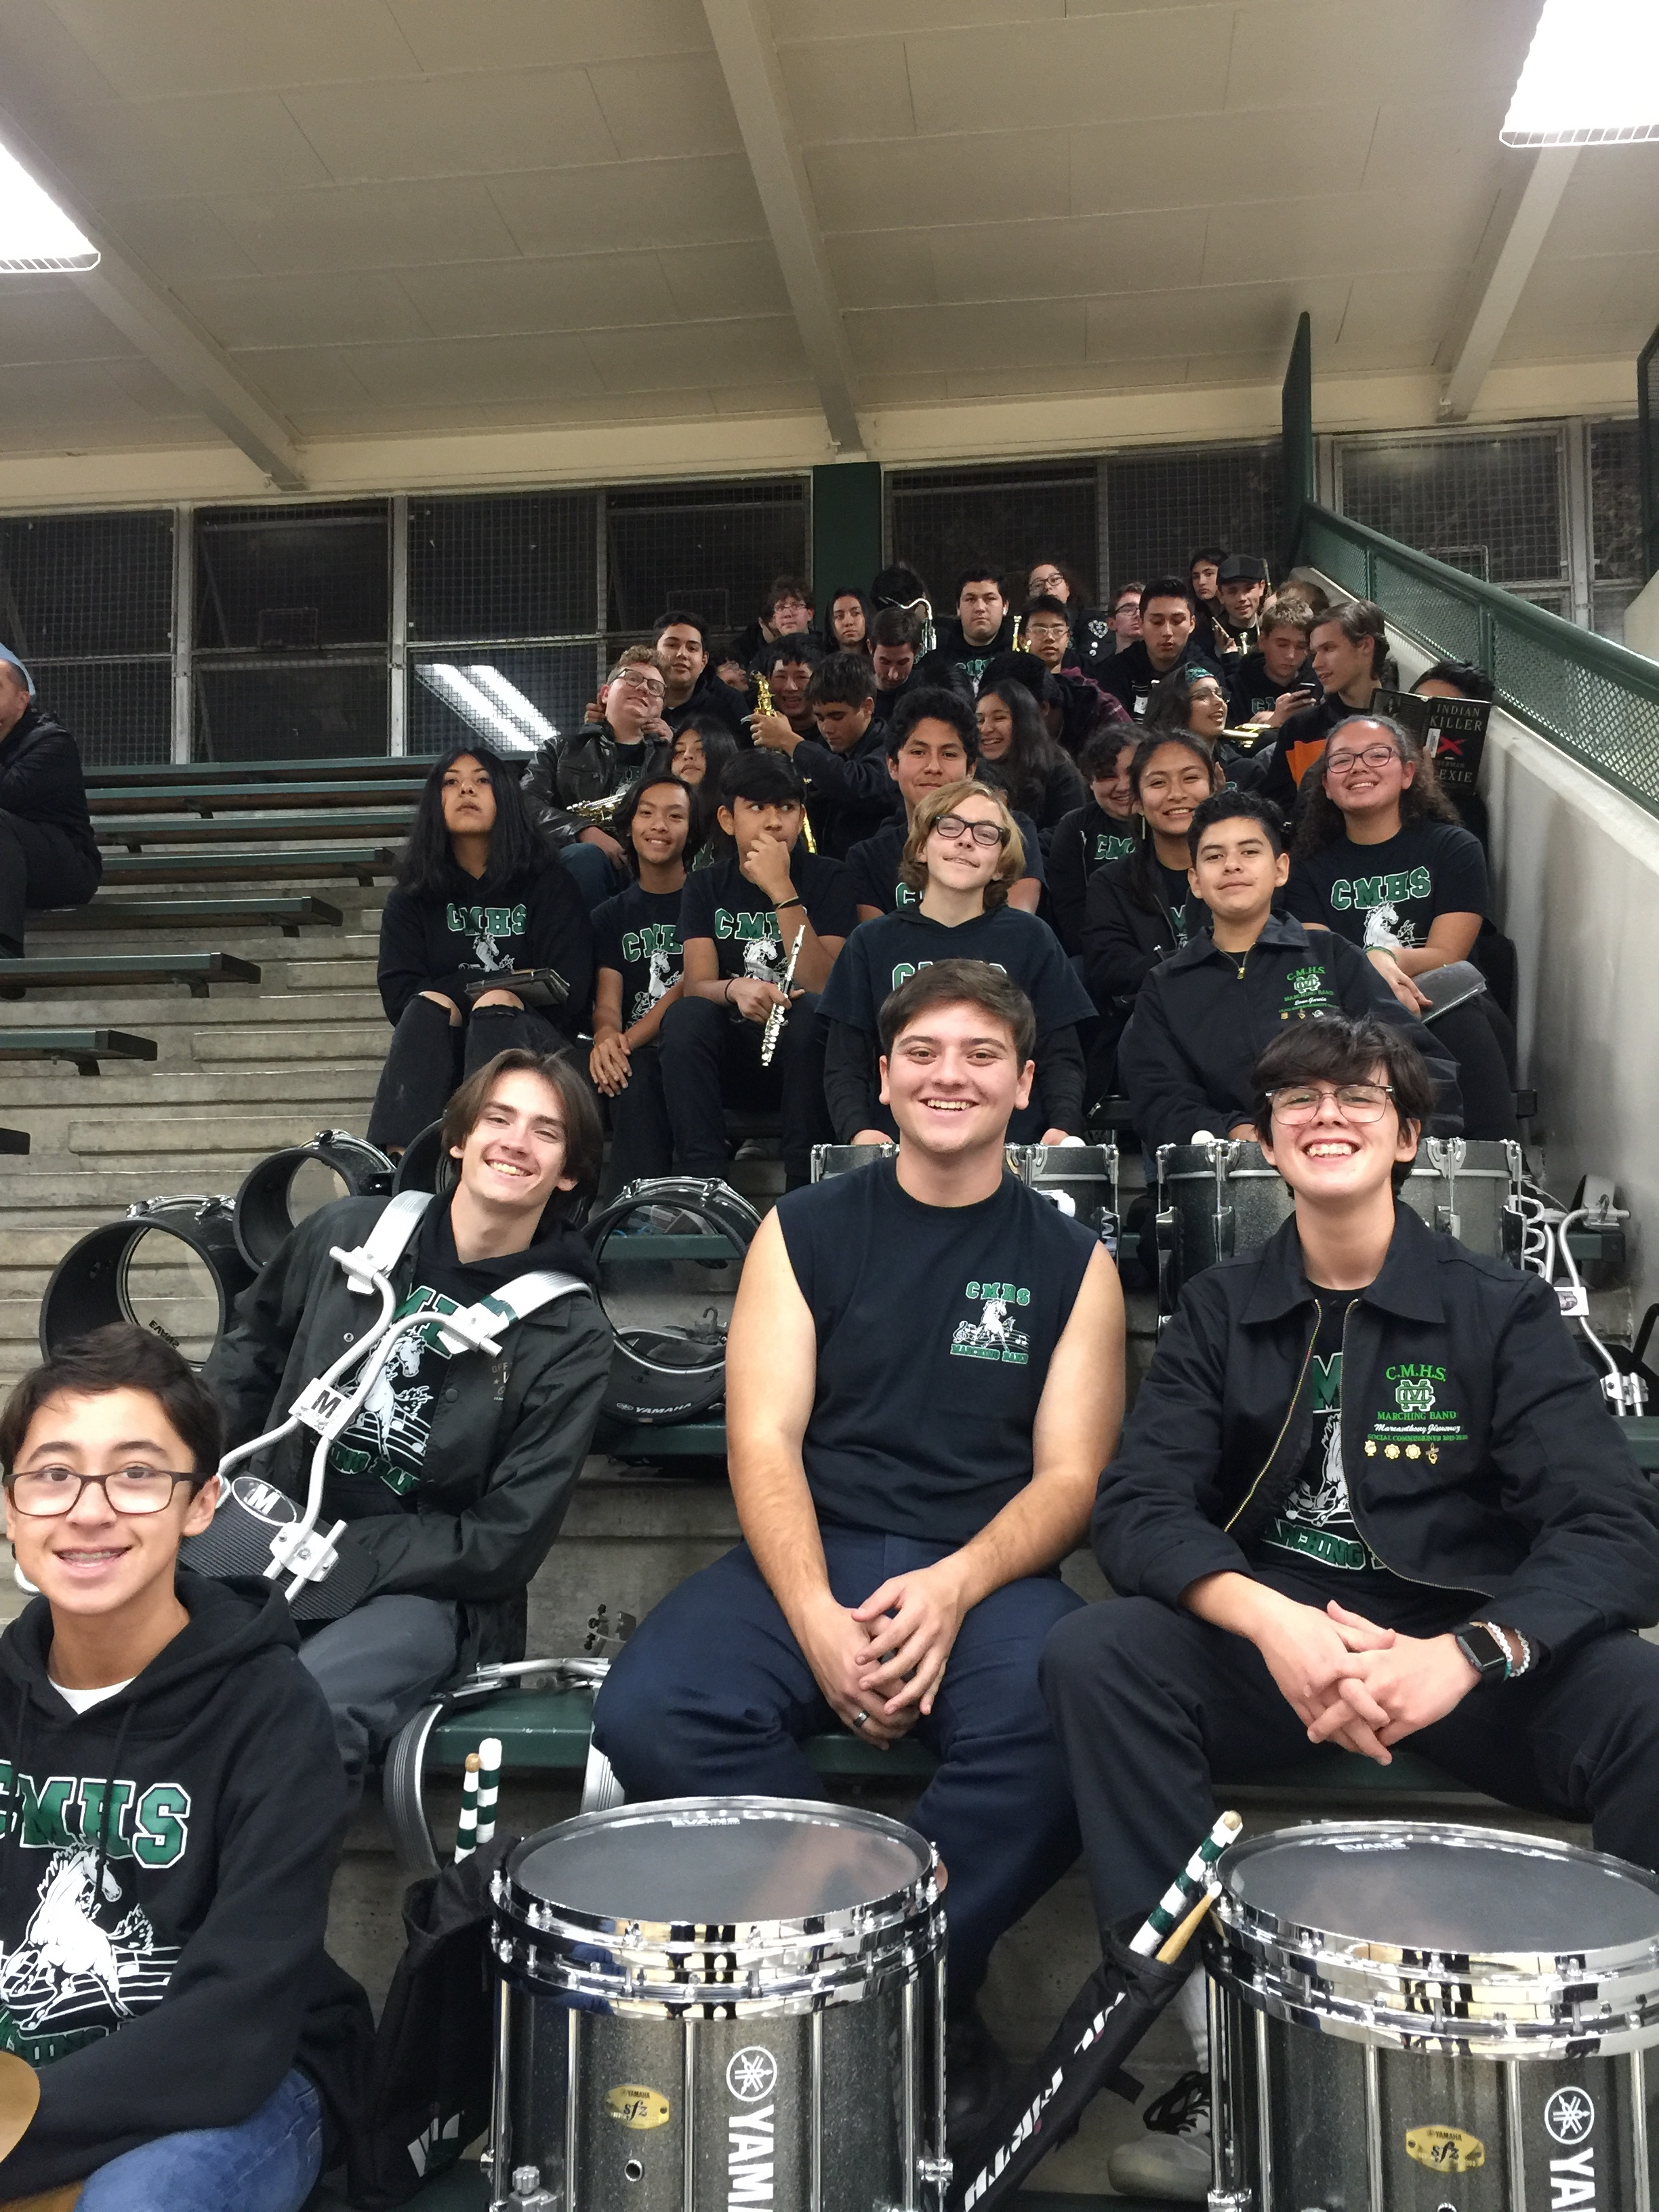 Pep Band adds support to our CMHS Basketball games